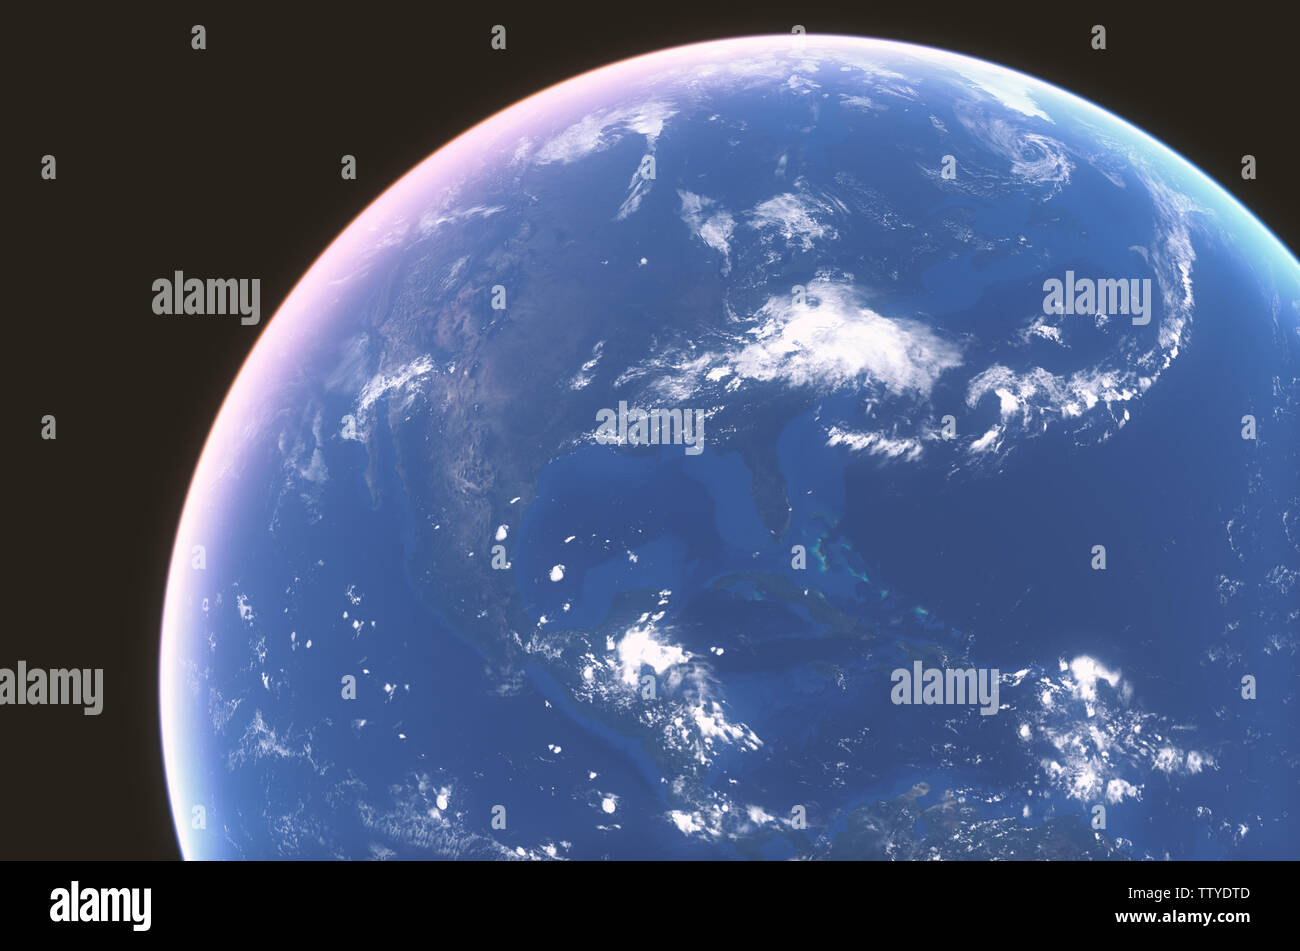 Earth NASA pictures - Stock Image